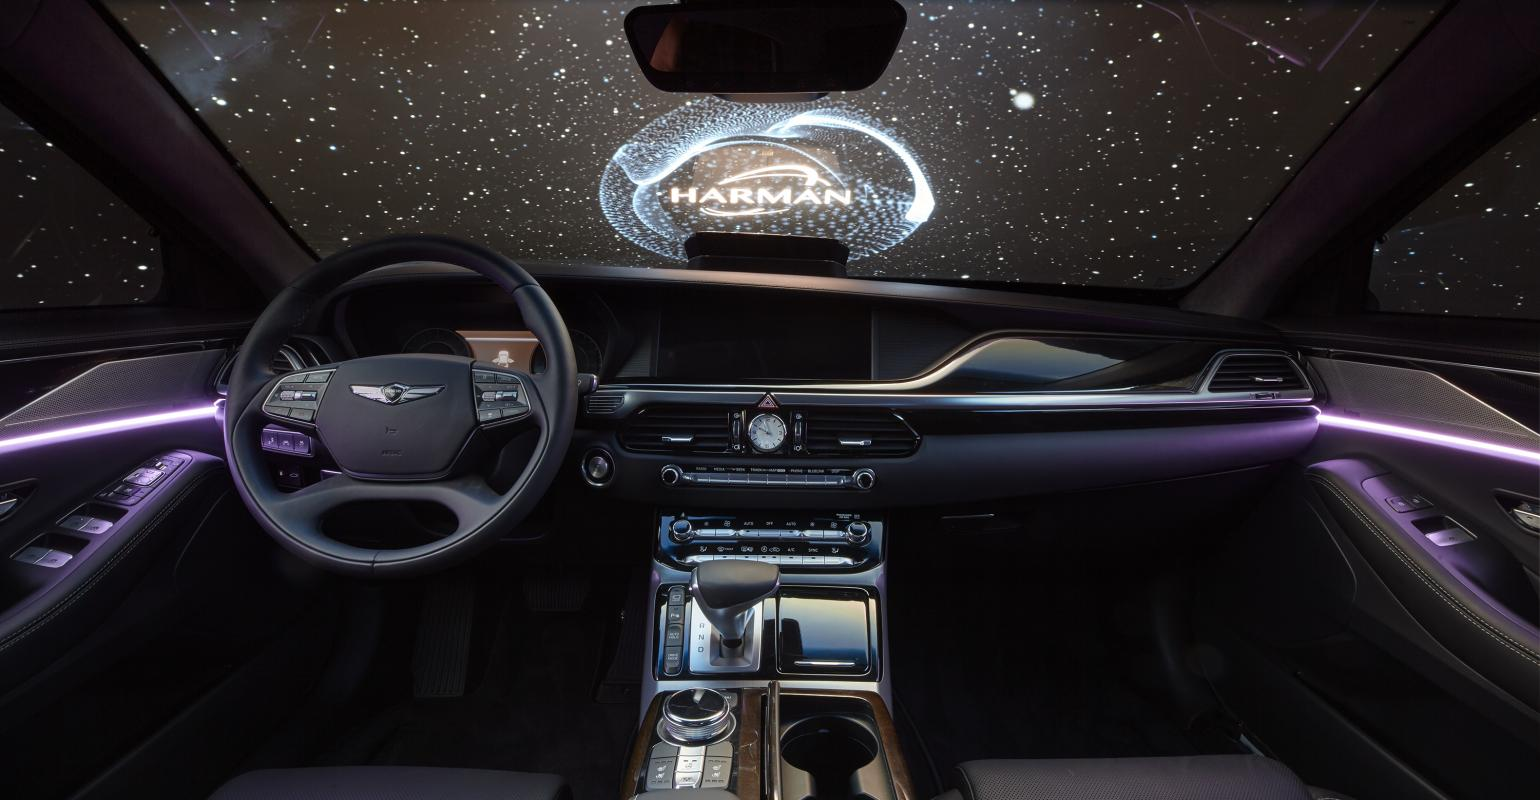 What to Do Behind Wheel of Self-Driving Car? Harman Has